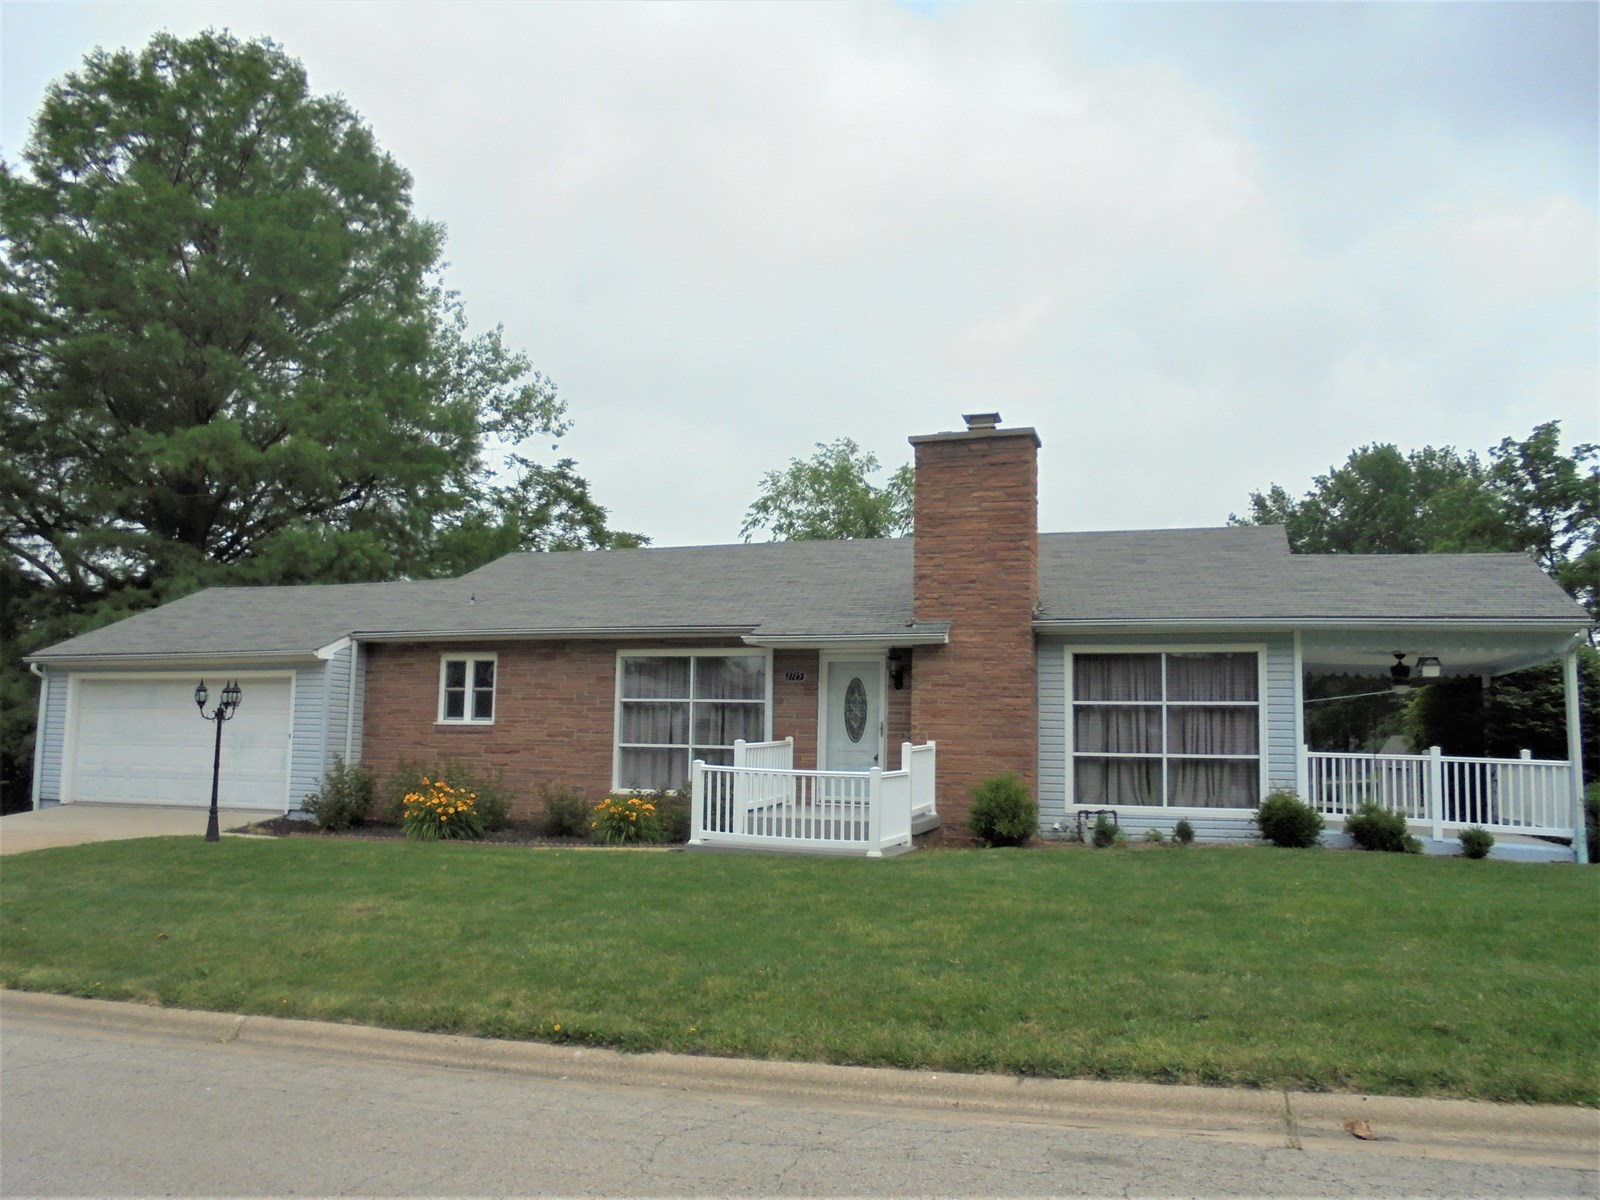 For Sale Ranch Home on Large Lot, Chillicothe, MO